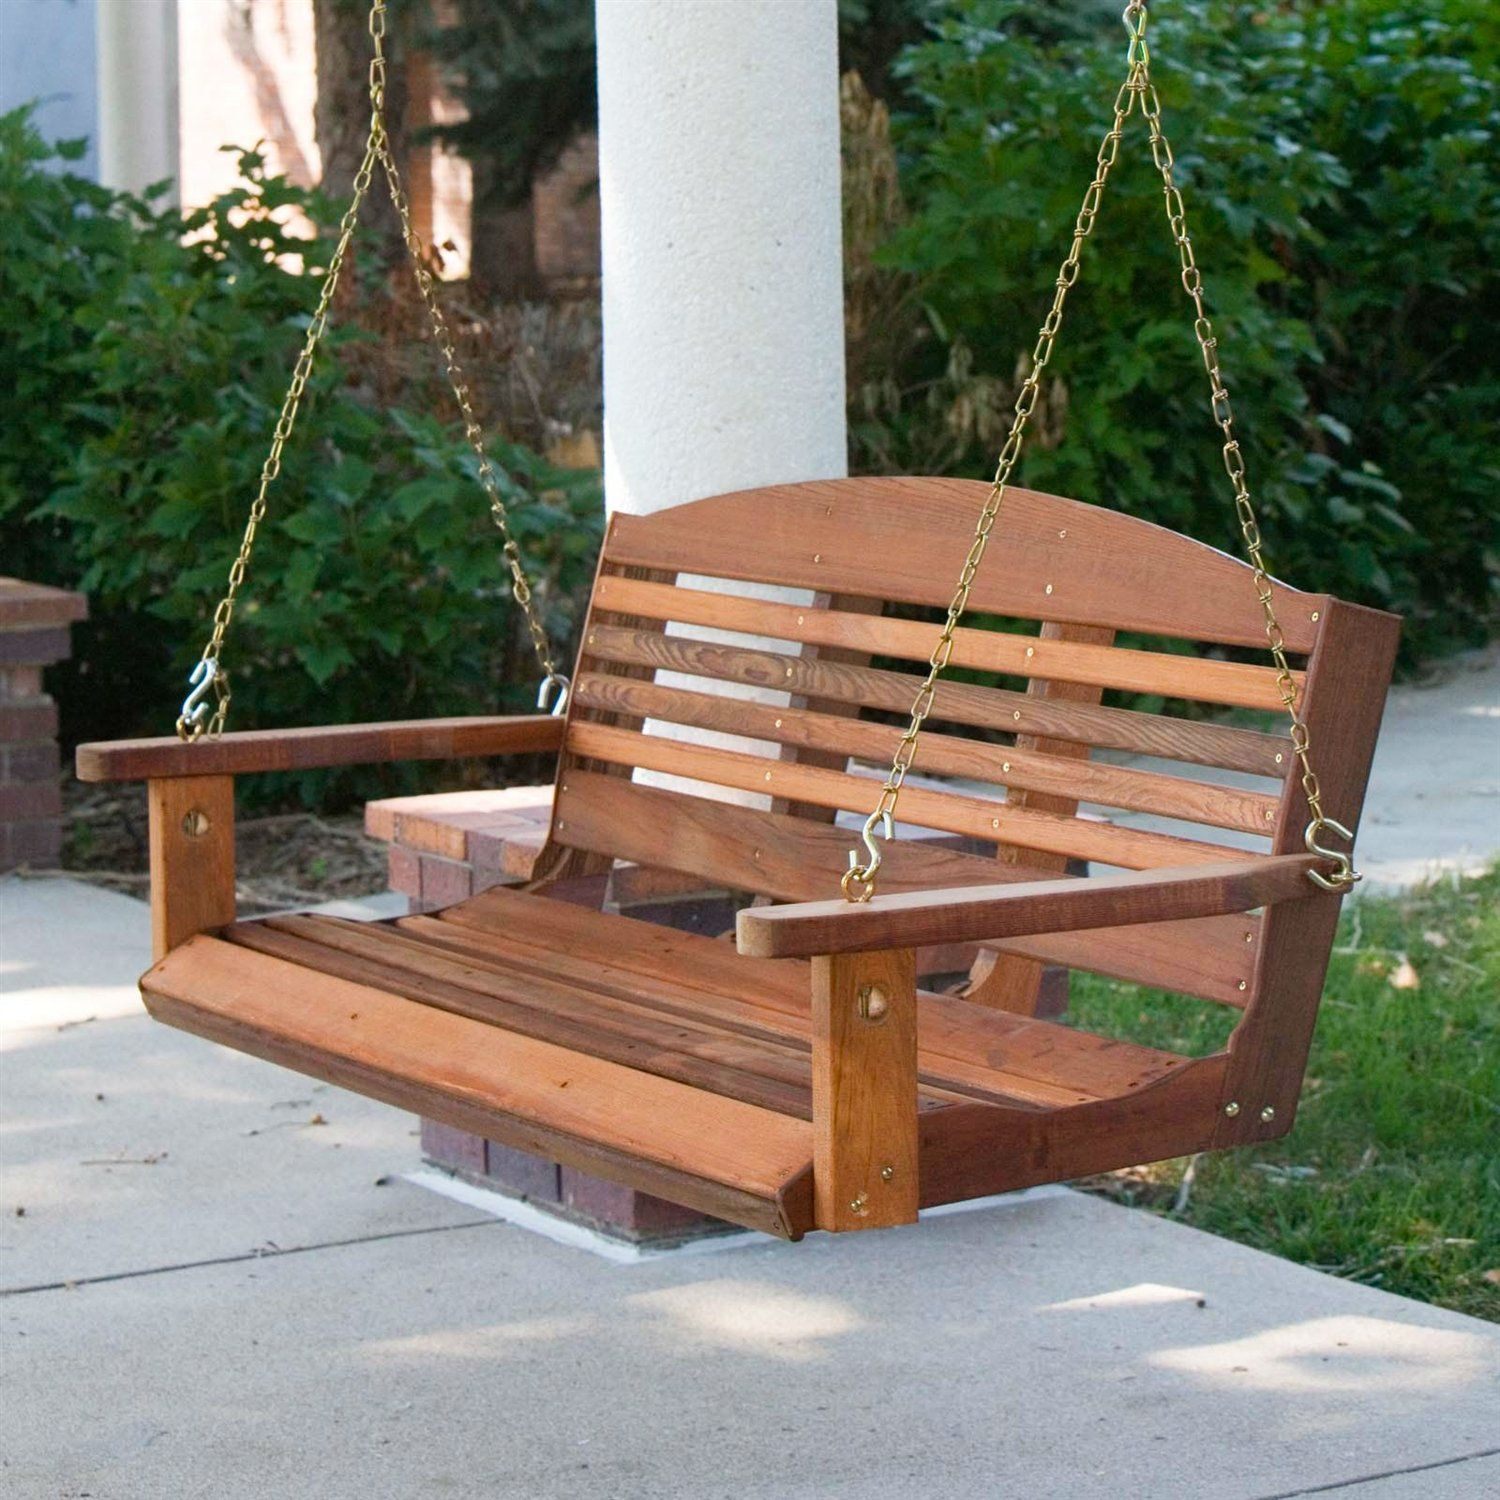 Balancelle Terrasse Classic 4 Ft Porch Swing In Red Cedar Wood Amish Made In